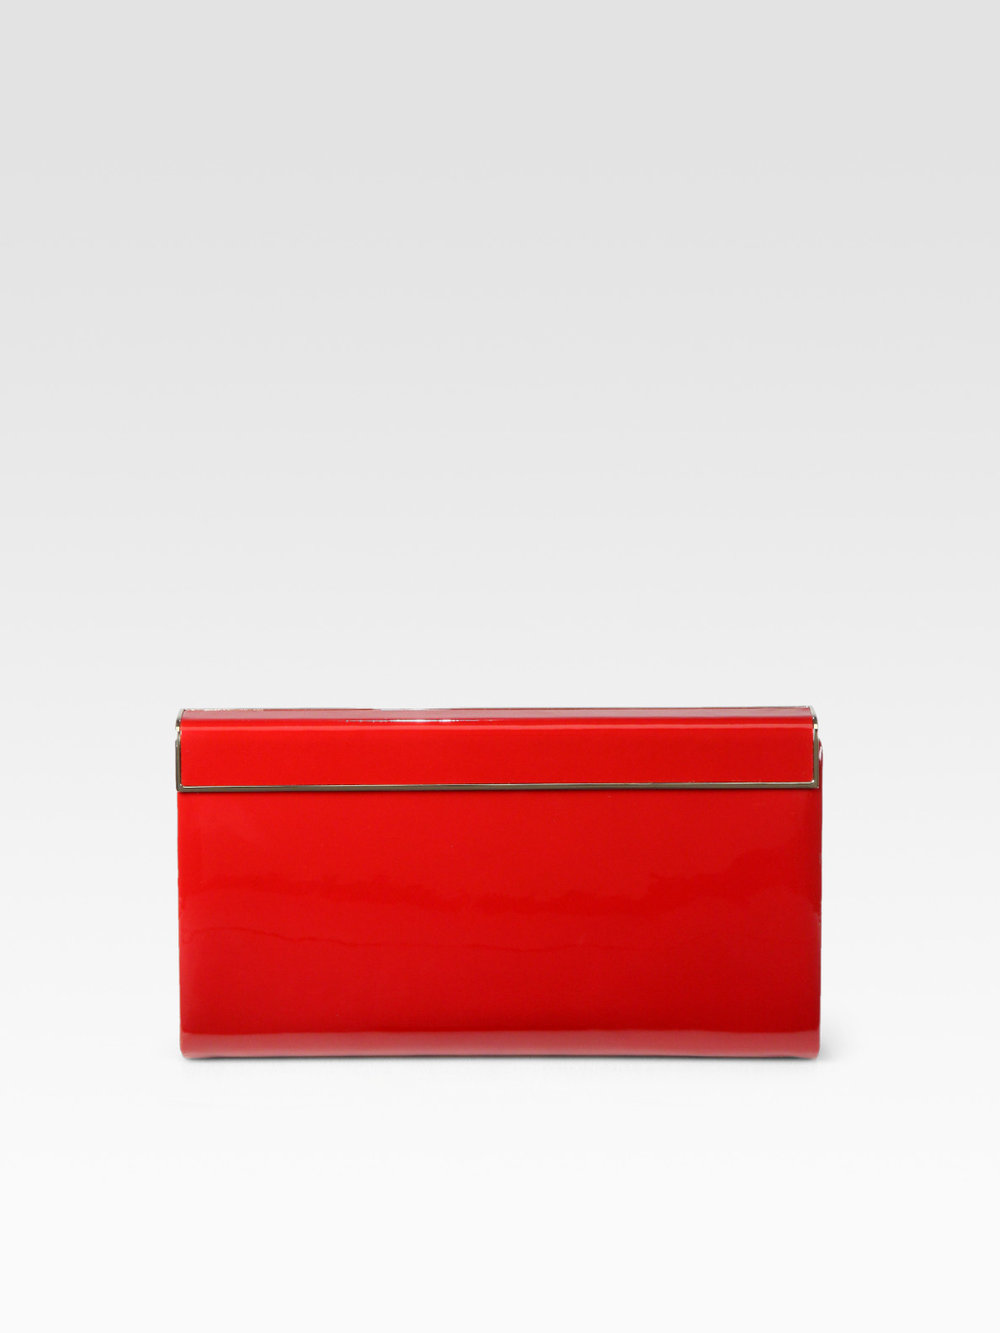 jimmy-choo-red-patent-leather-magnetic-clutch-product-1-3826652-711837207.jpg